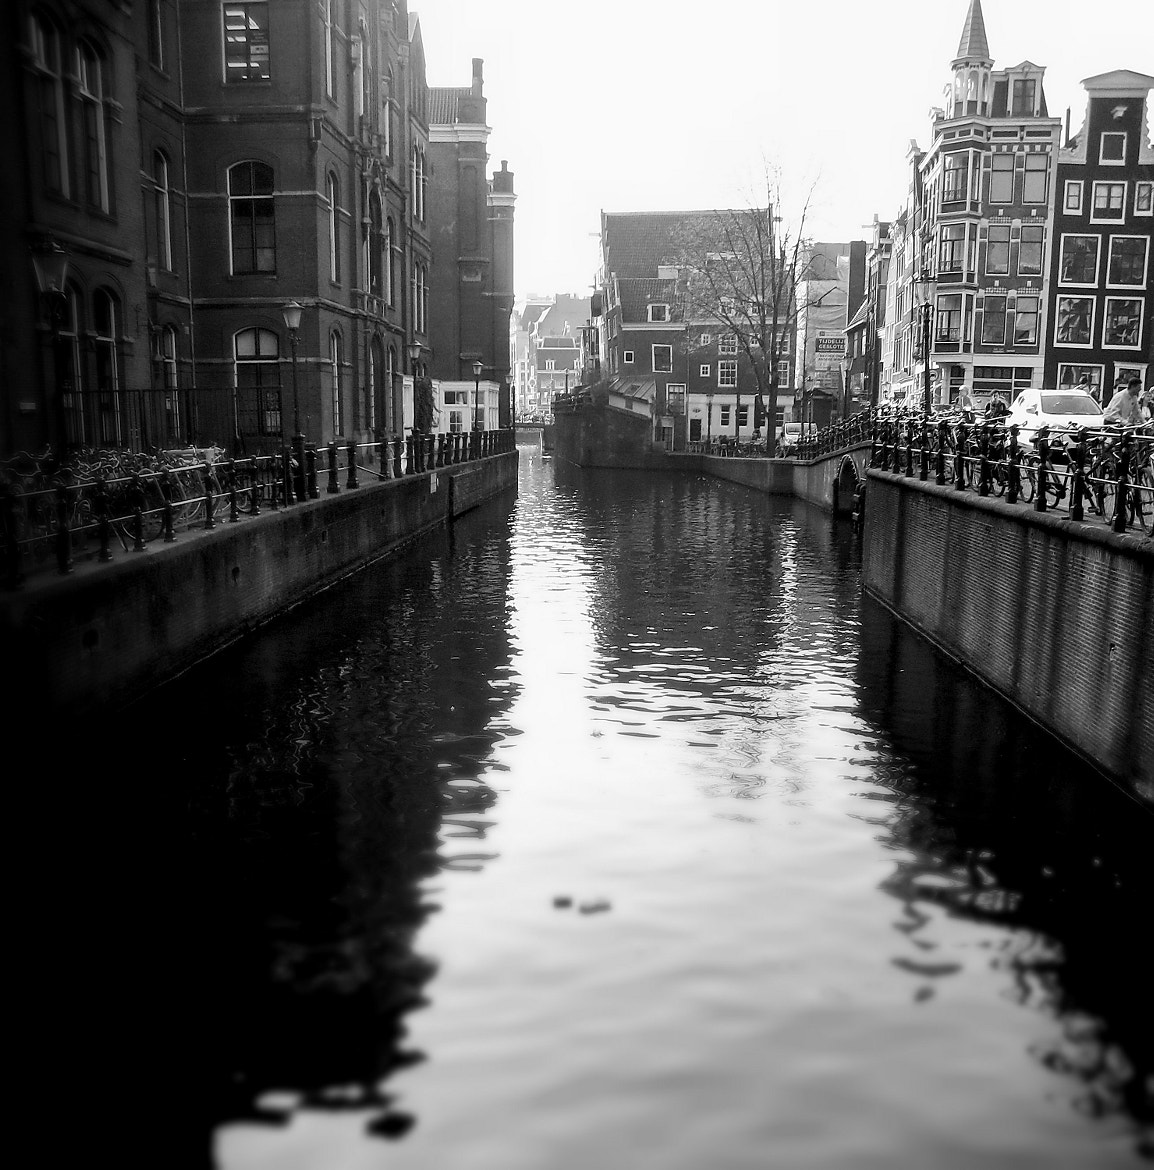 Photograph Did You Get Lost In Amsterdam? by Dragan Djuric on 500px